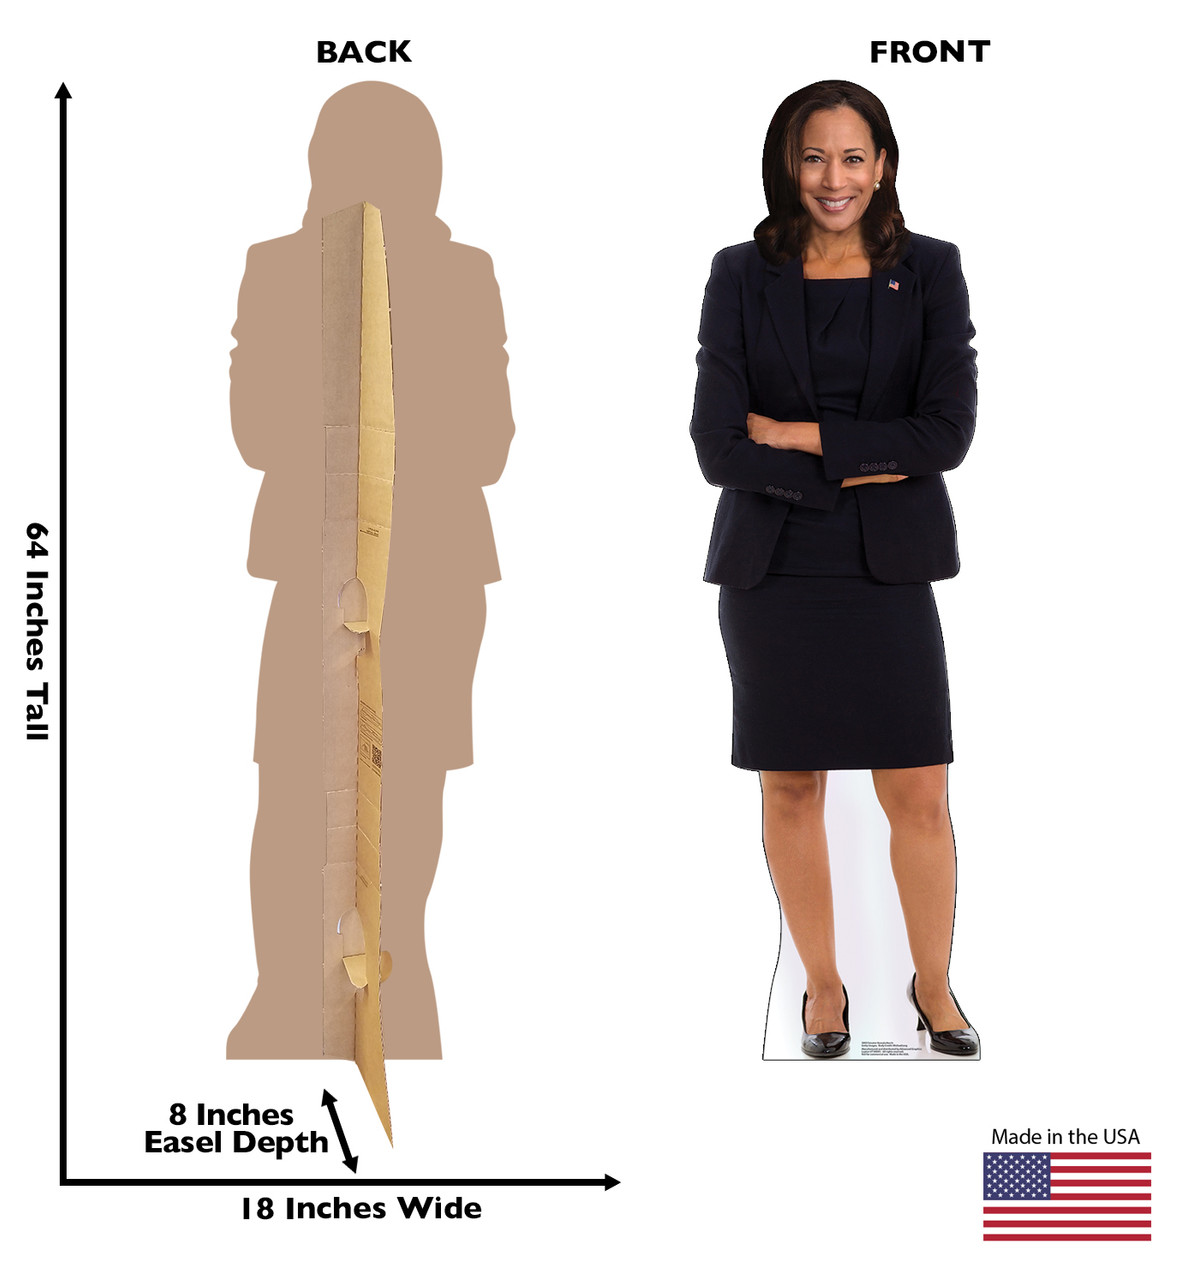 Vice President Kamala Harris Cardboard Cutout with Front and Back Dimensions.